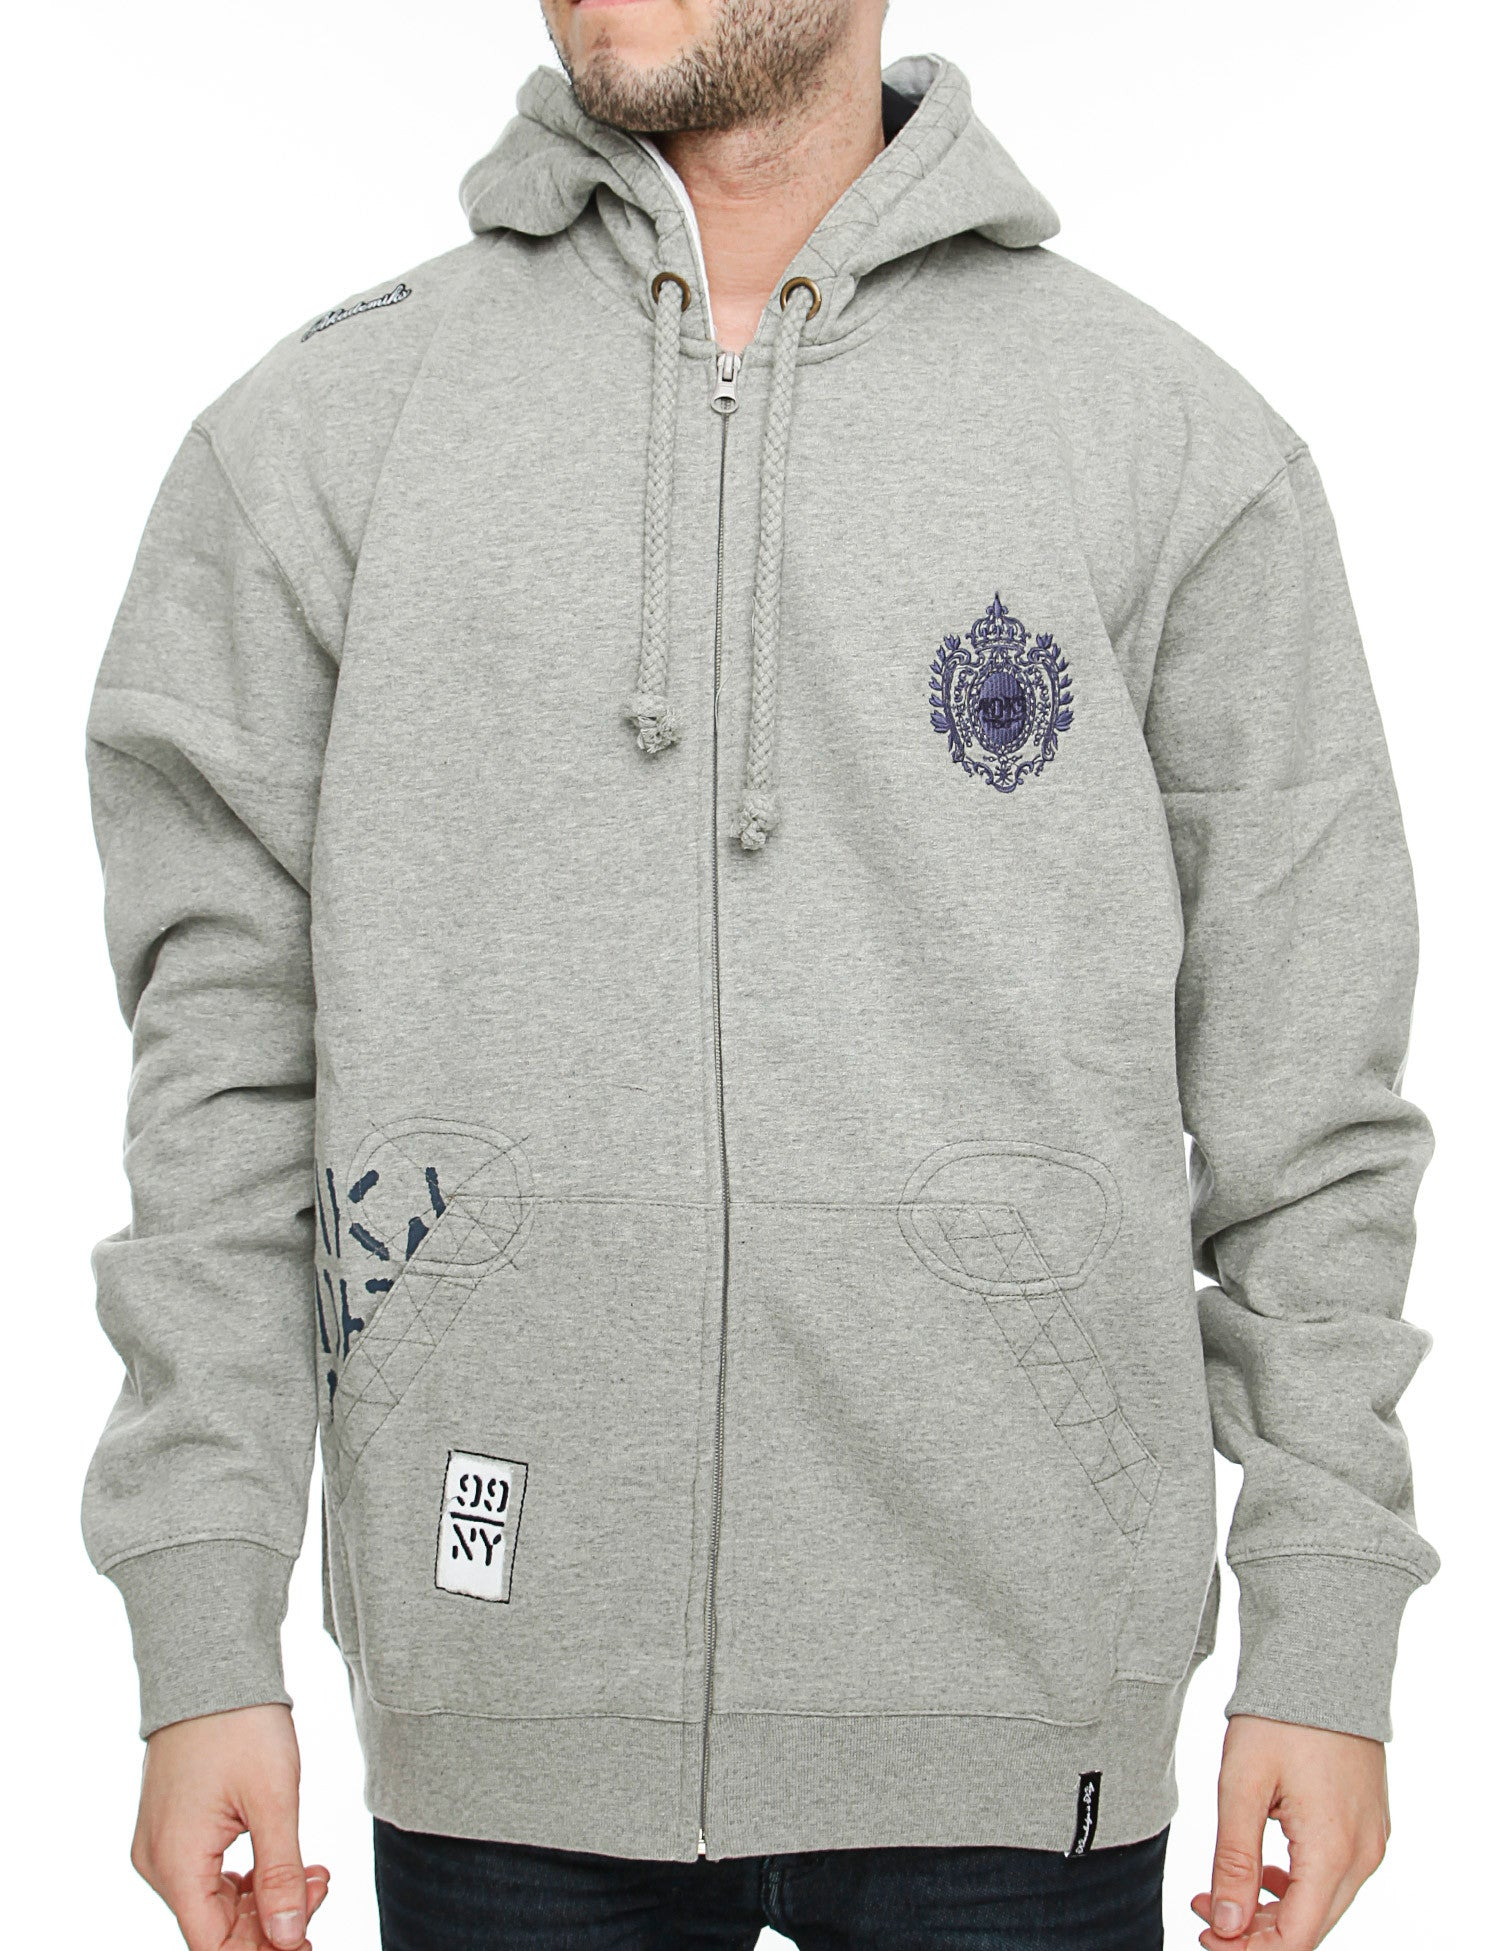 Thundar Fleece Hoodie Grey